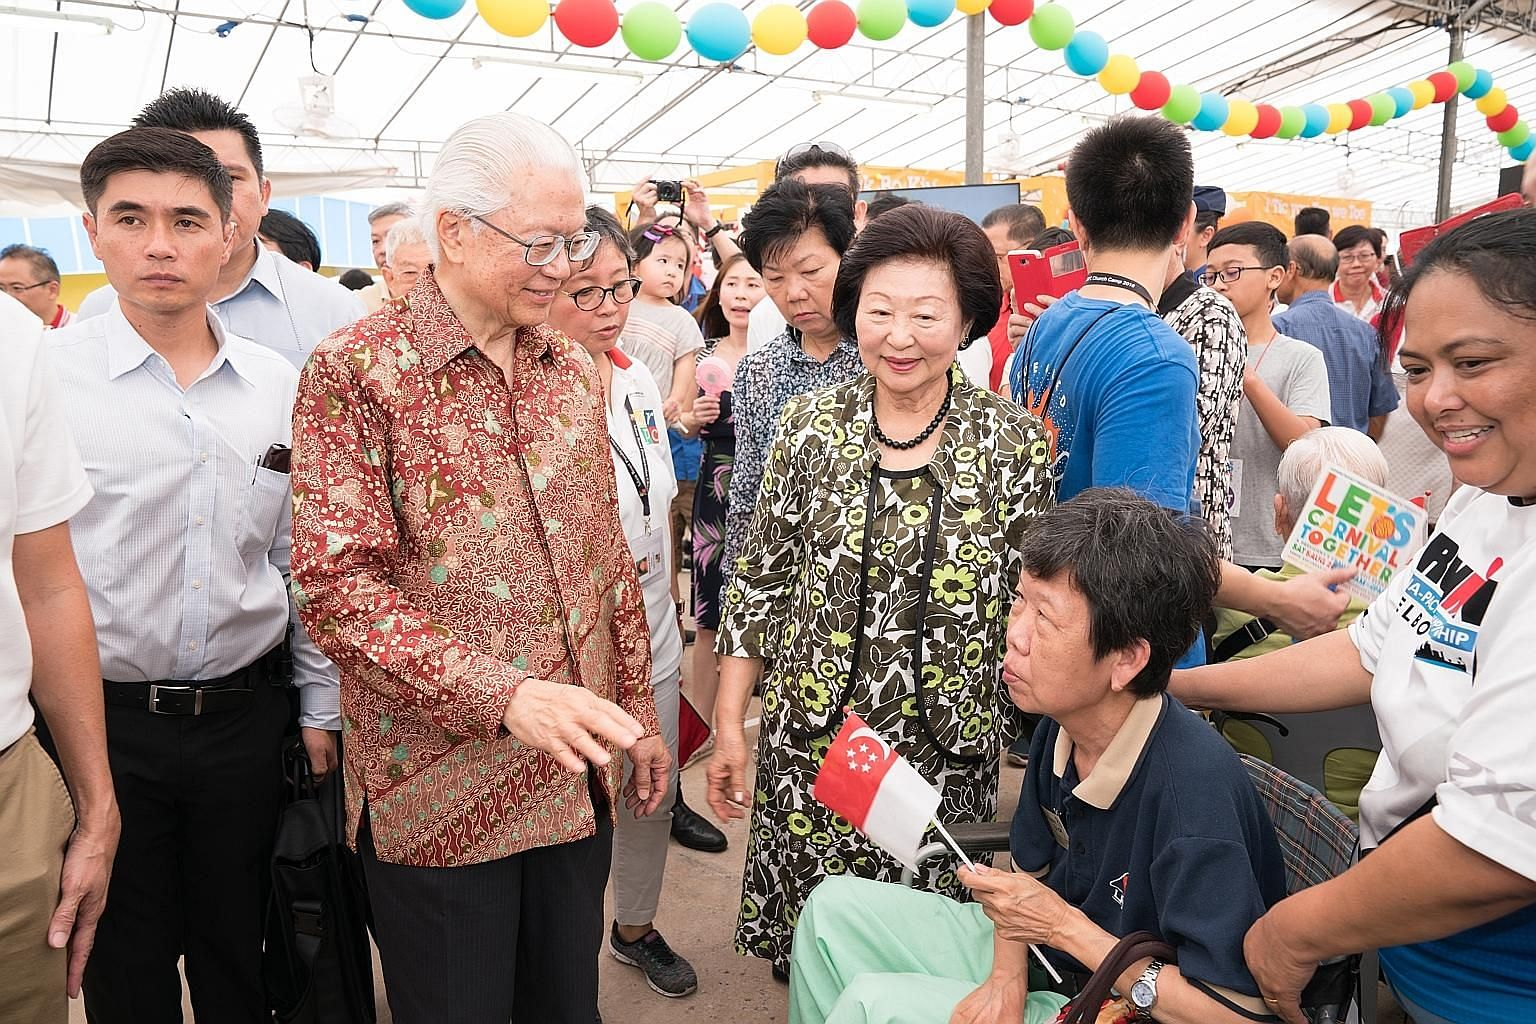 President Tony Tan Keng Yam and his wife Mary joined 700 beneficiaries at the carnival organised by Adam Road Presbyterian Church yesterday.